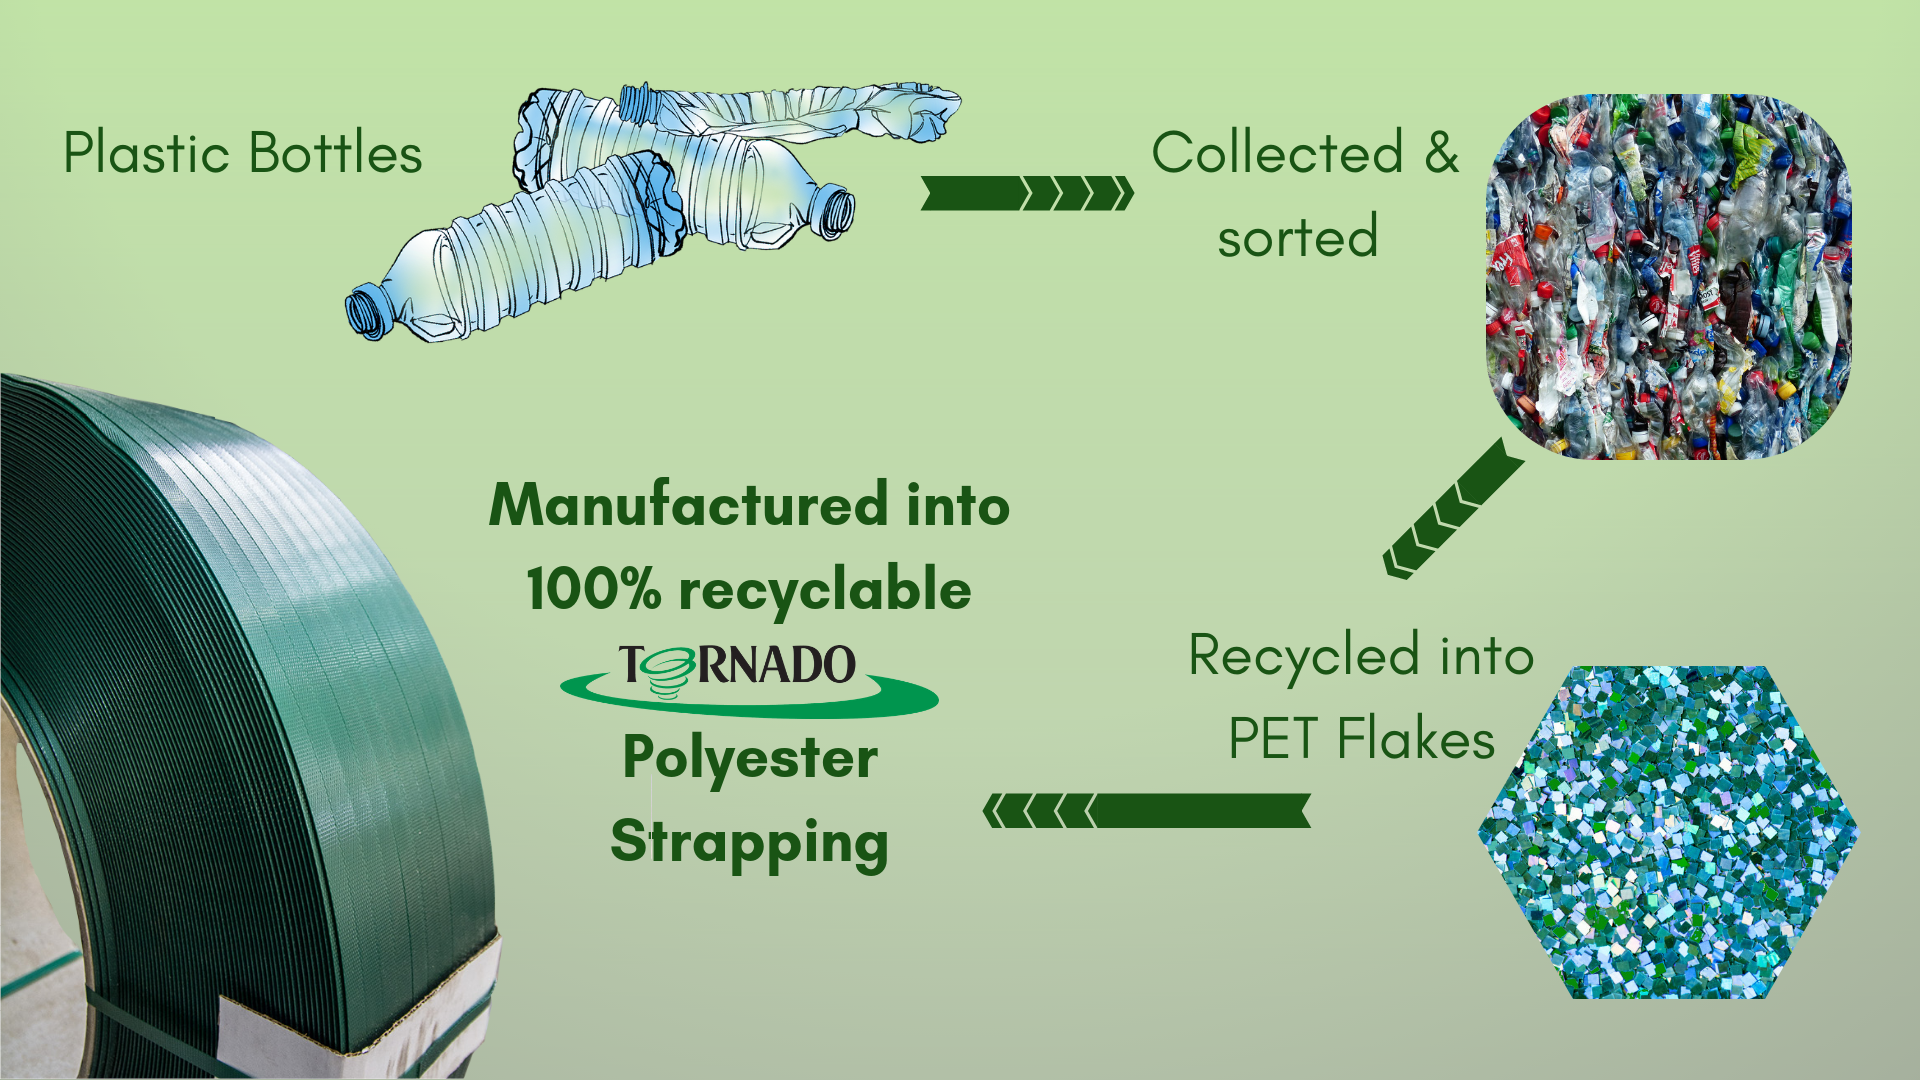 Polyester strapping made from recycled PET